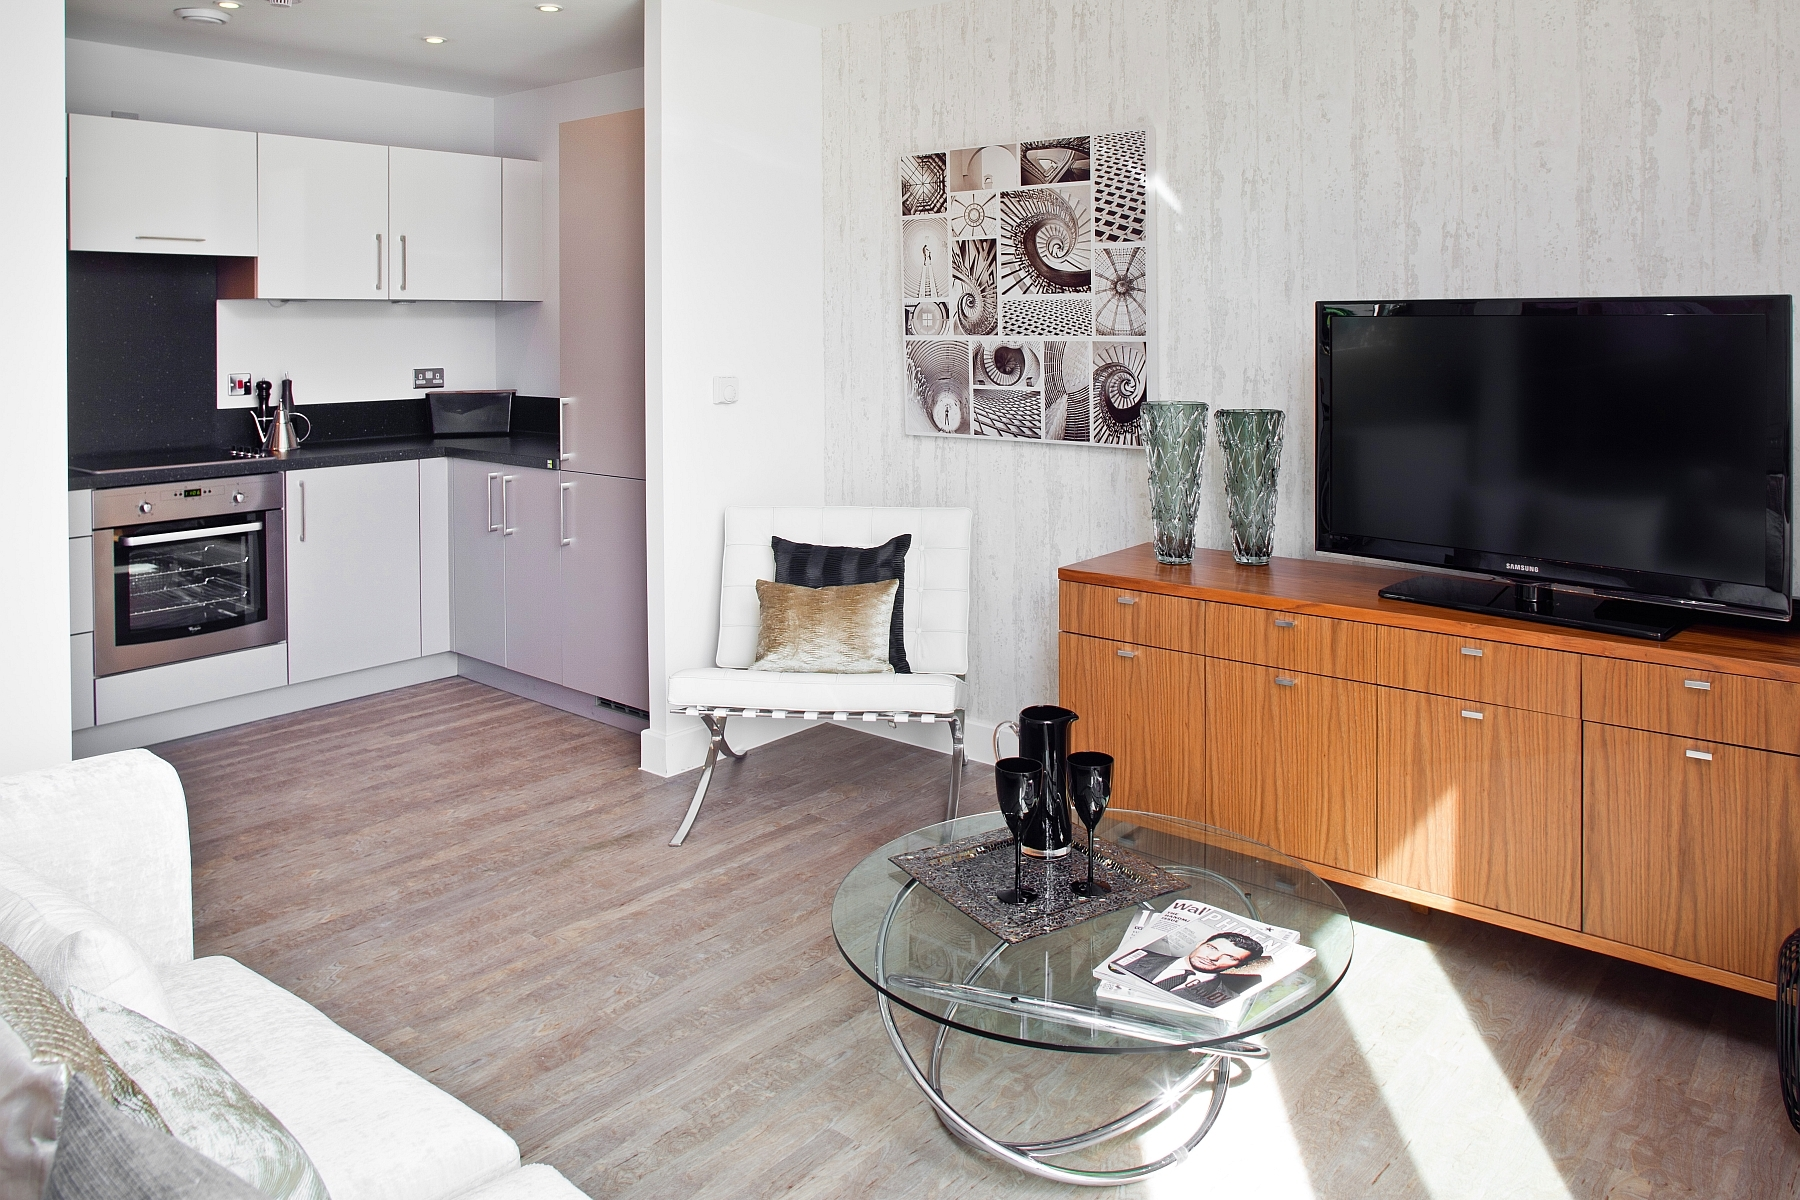 1bed - living area